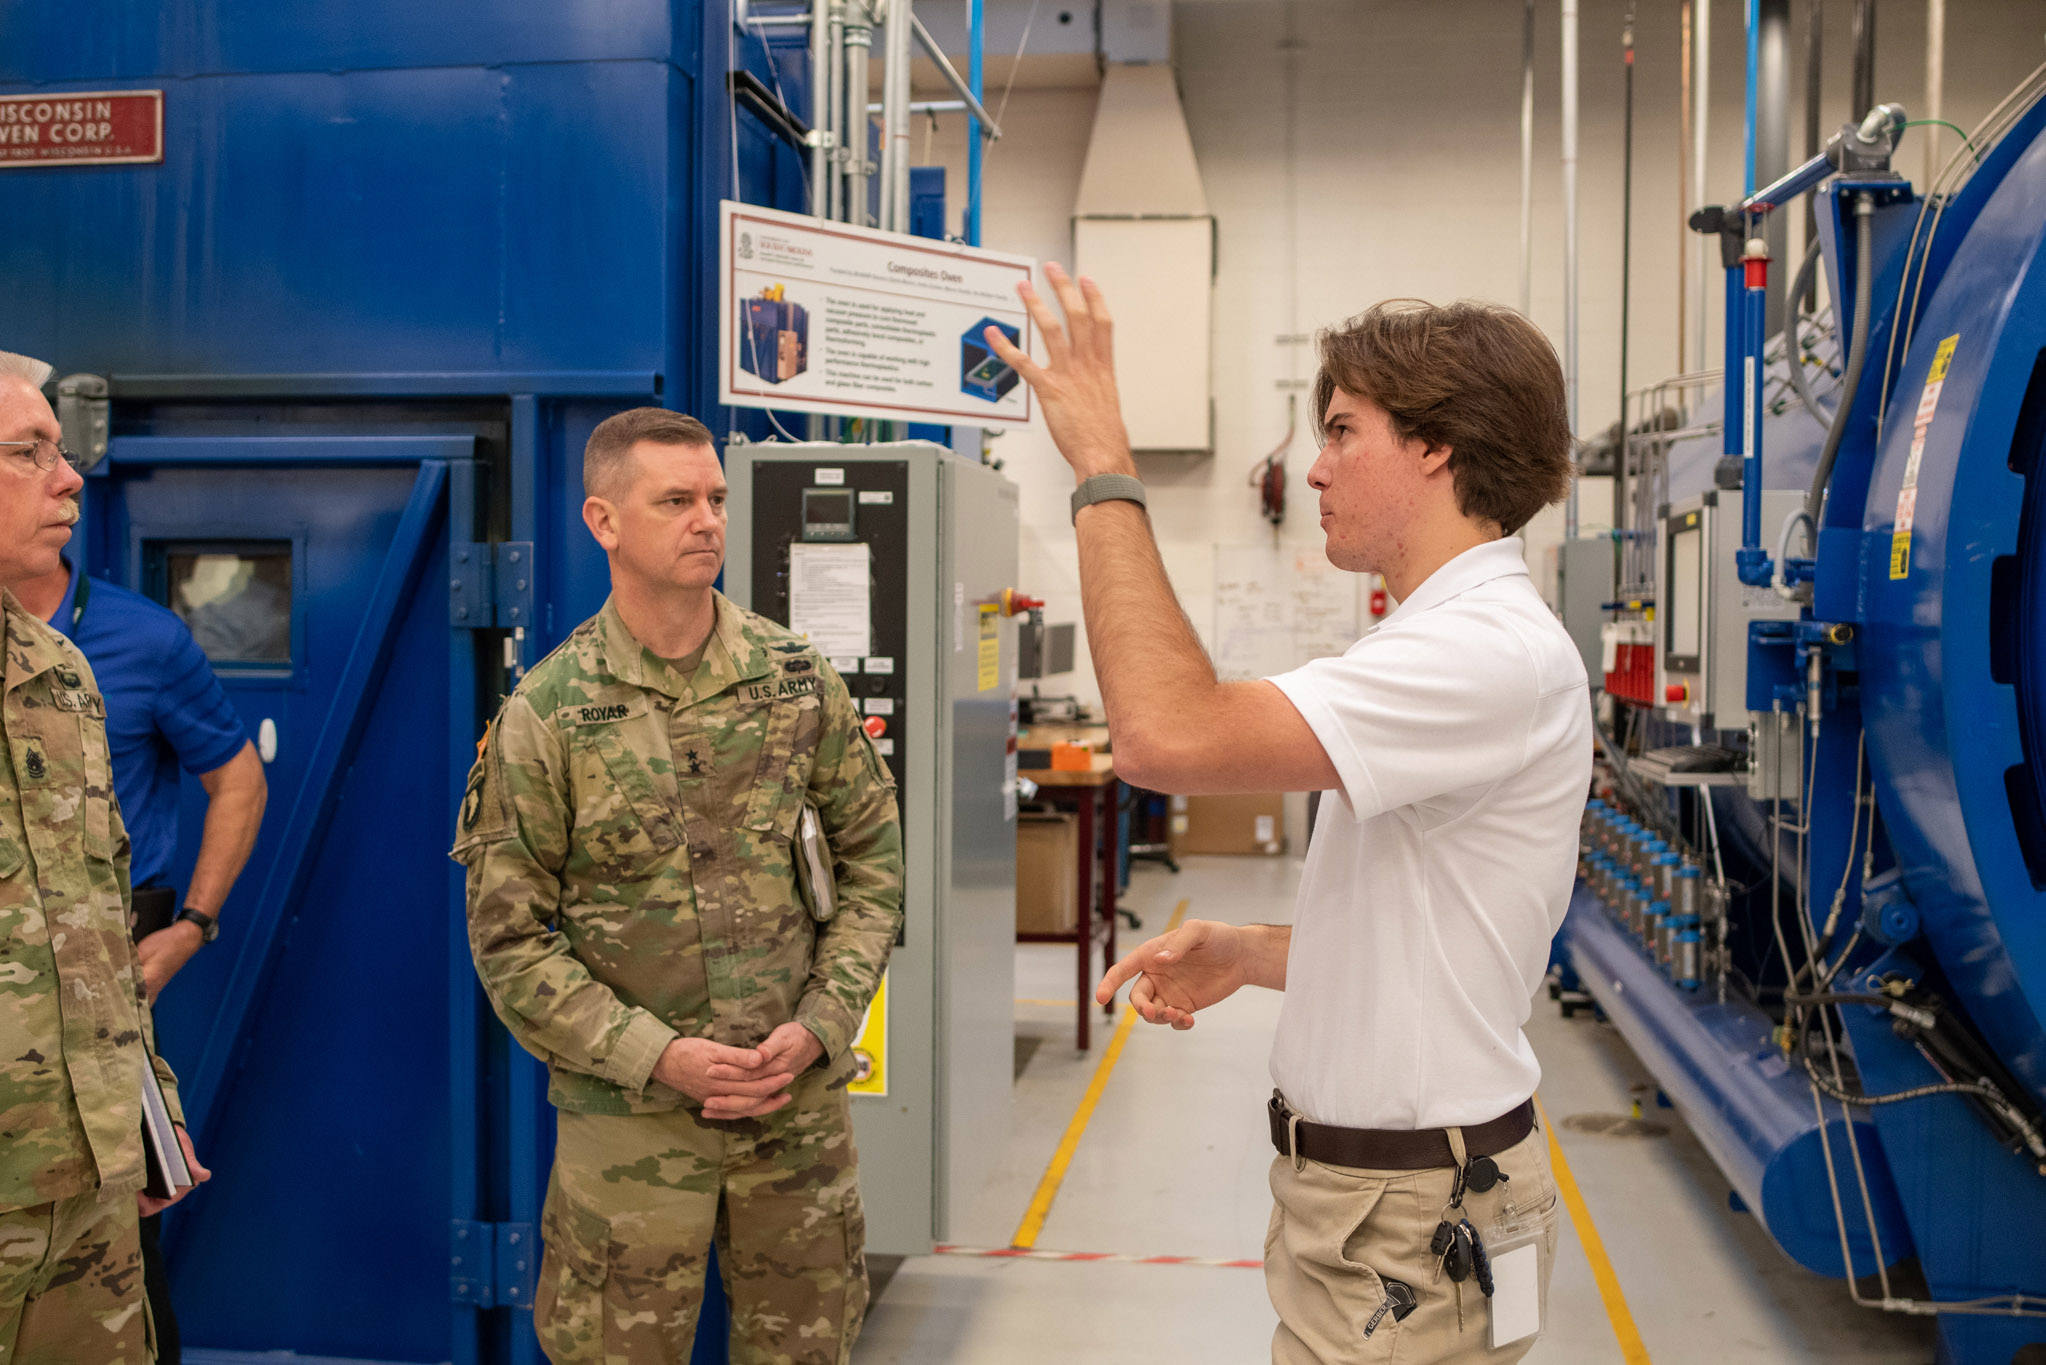 A student talks to Sarj. Maj. George Dove and AMCOM Commander Maj. Gen. Todd Royar as he is giving them a tour through the McNair Center. Large industrial equipment is in the background.